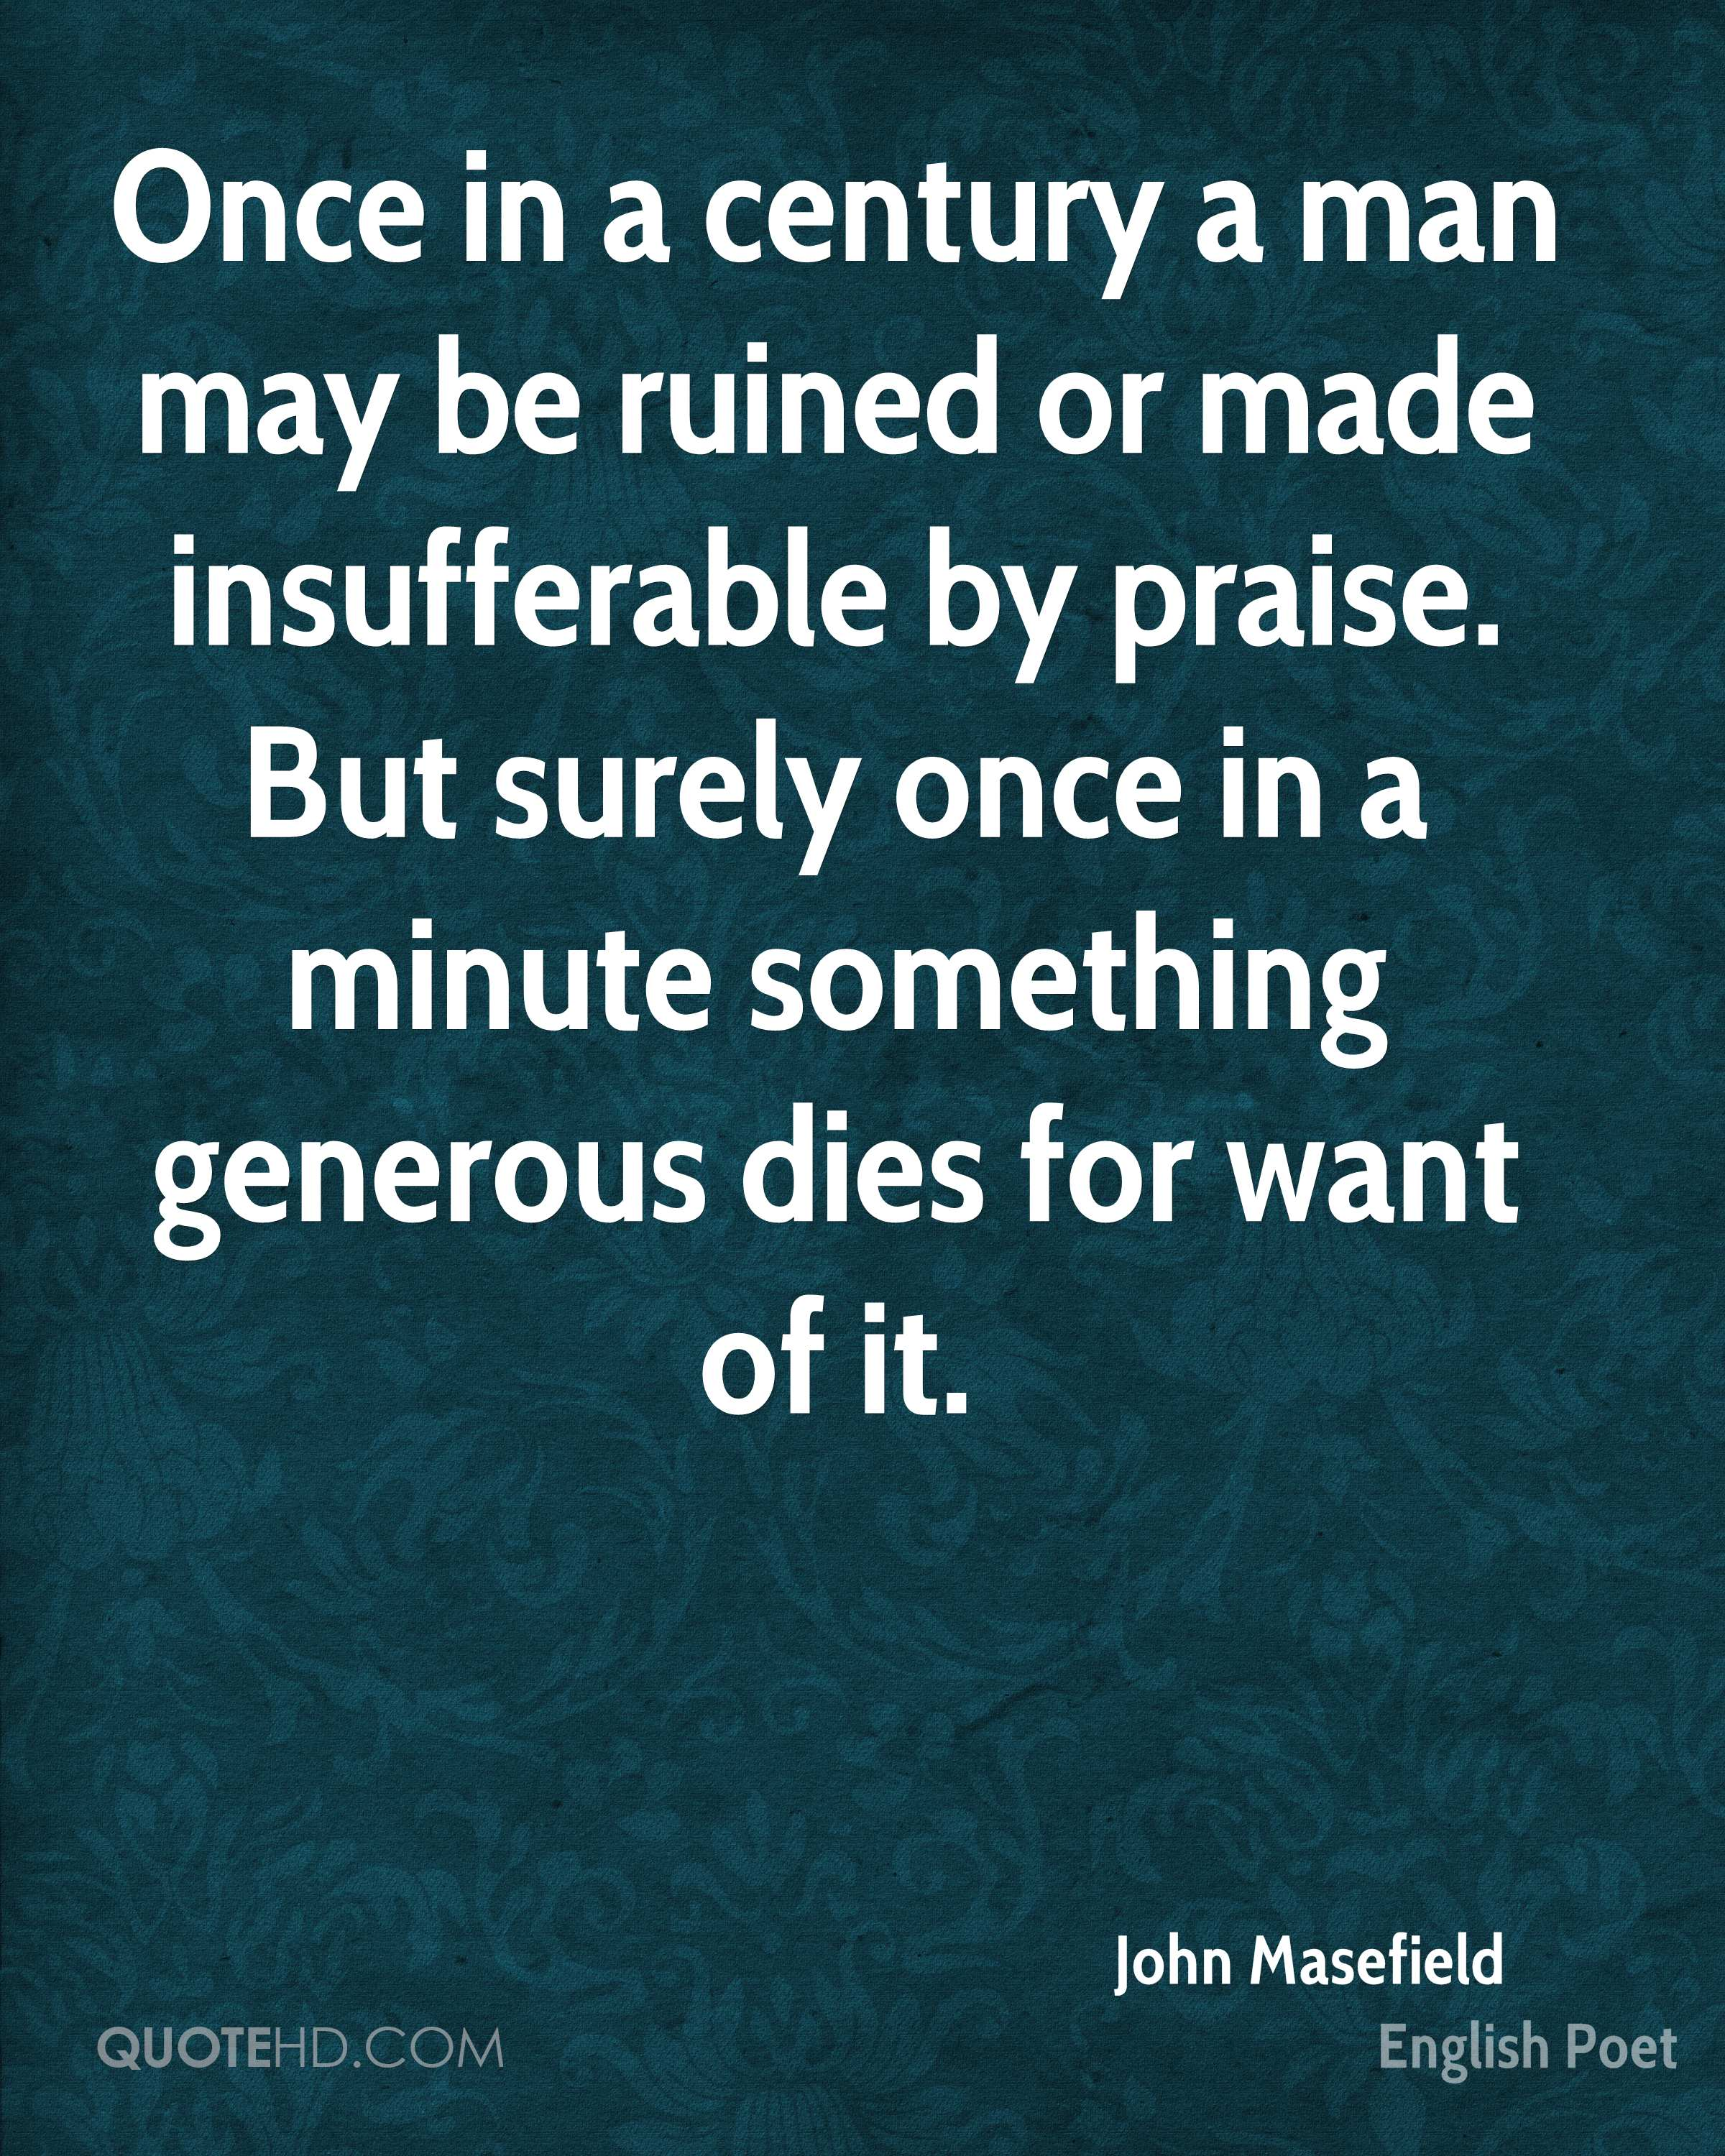 Once in a century a man may be ruined or made insufferable by praise. But surely once in a minute something generous dies for want of it.